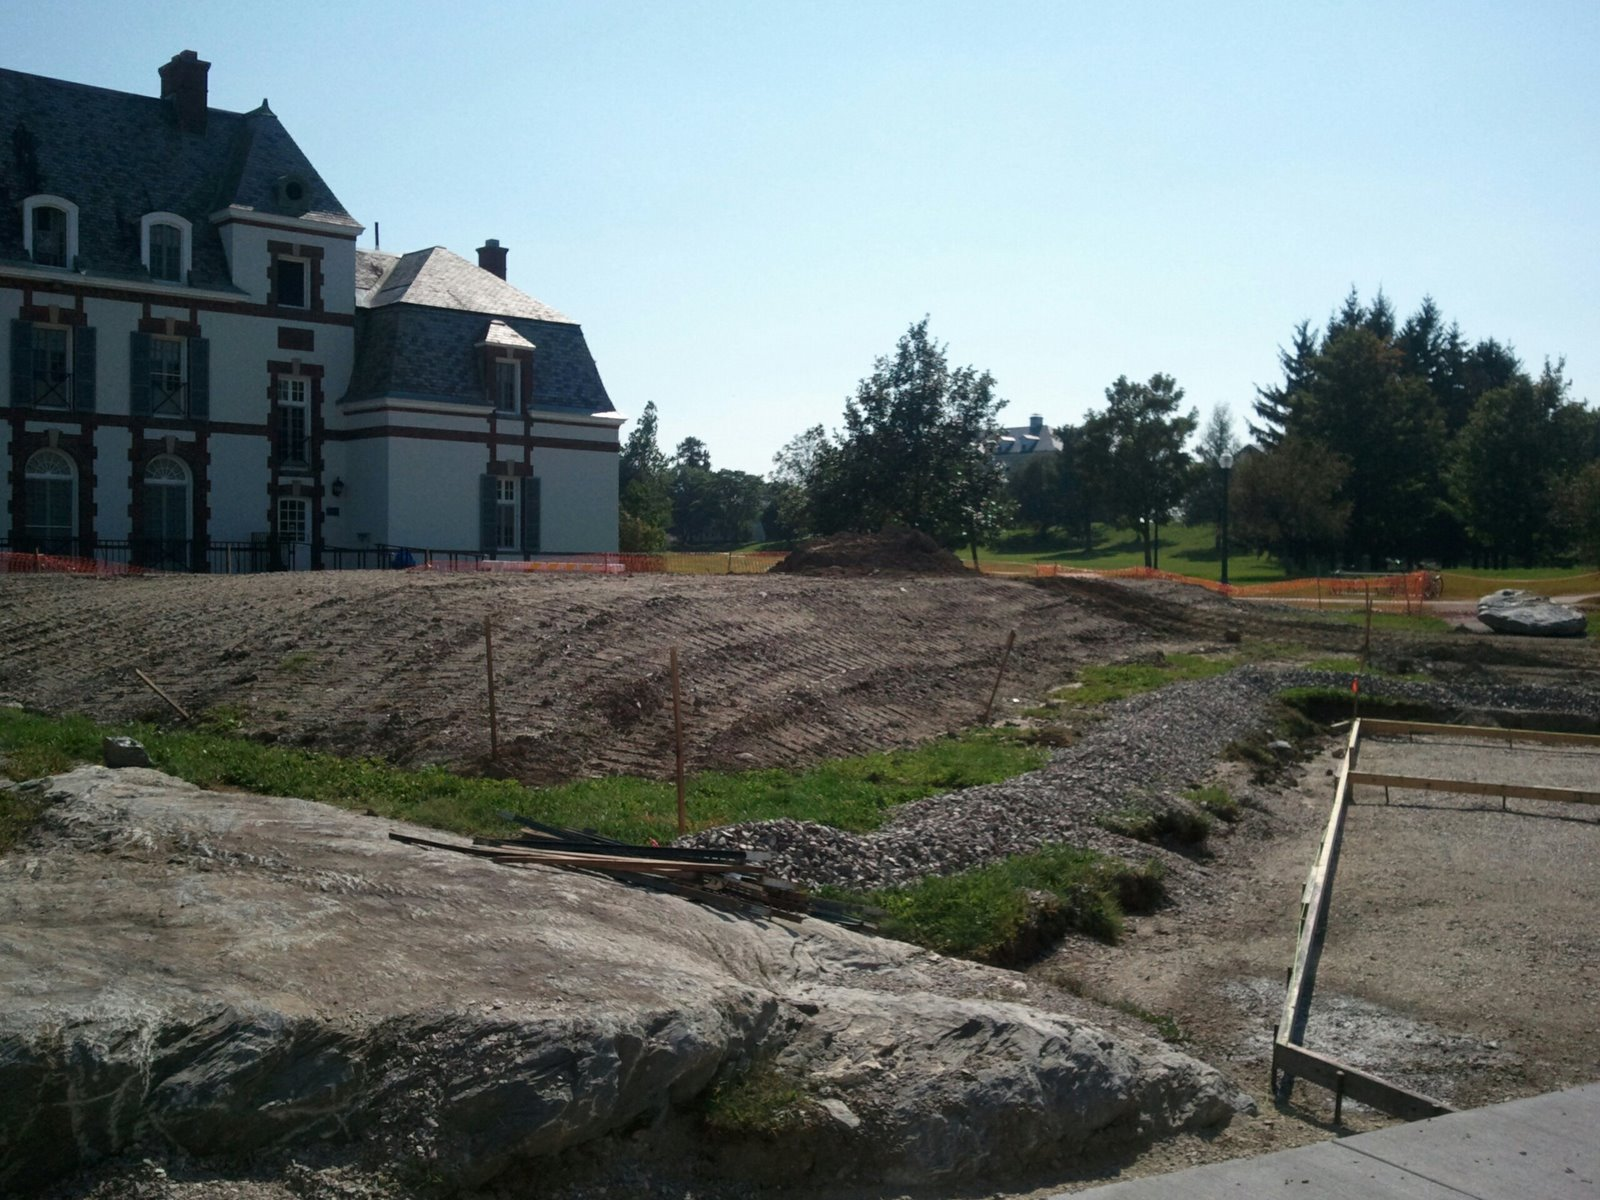 The Middlebury Landscape Atwater Construction Turf Battle